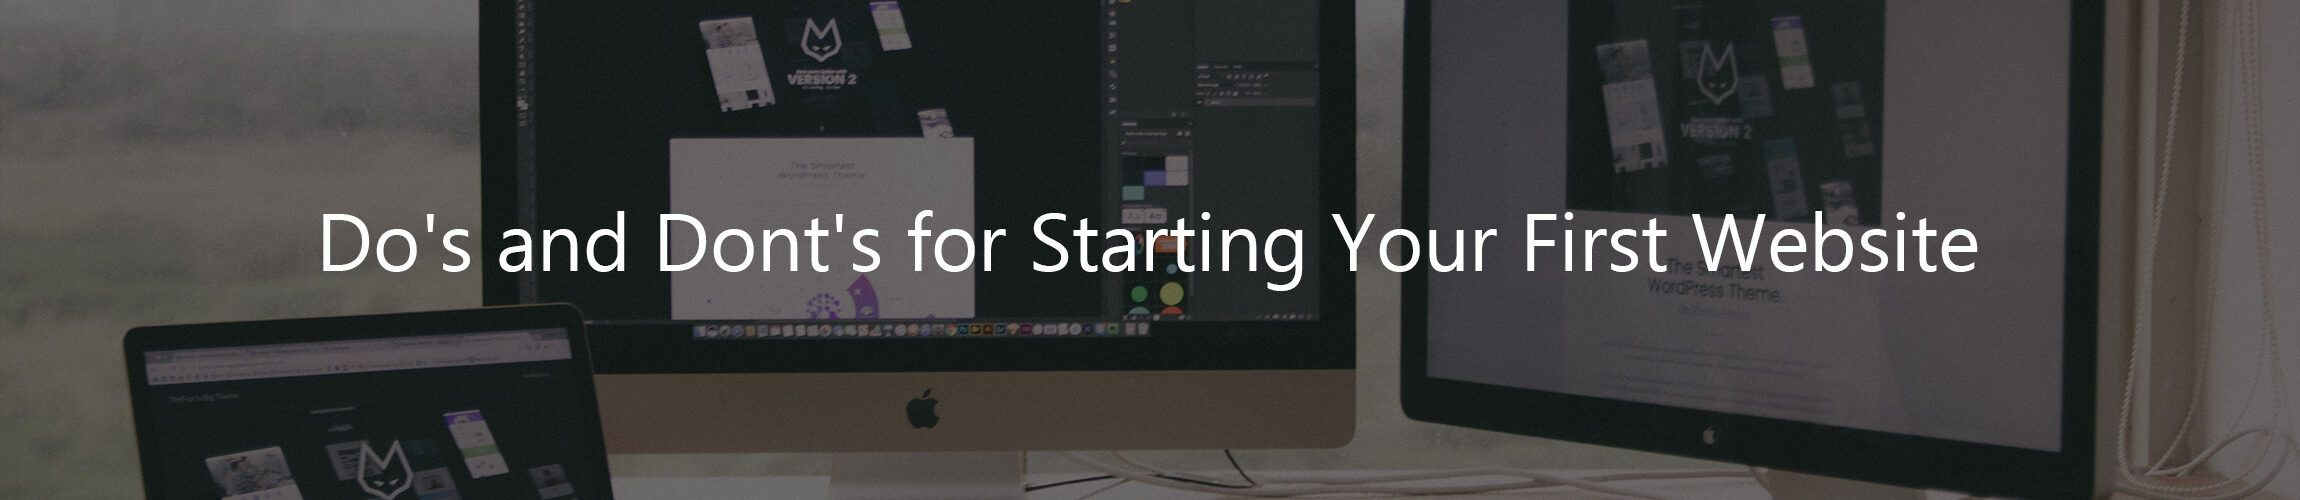 Dos and Donts for starting your first website